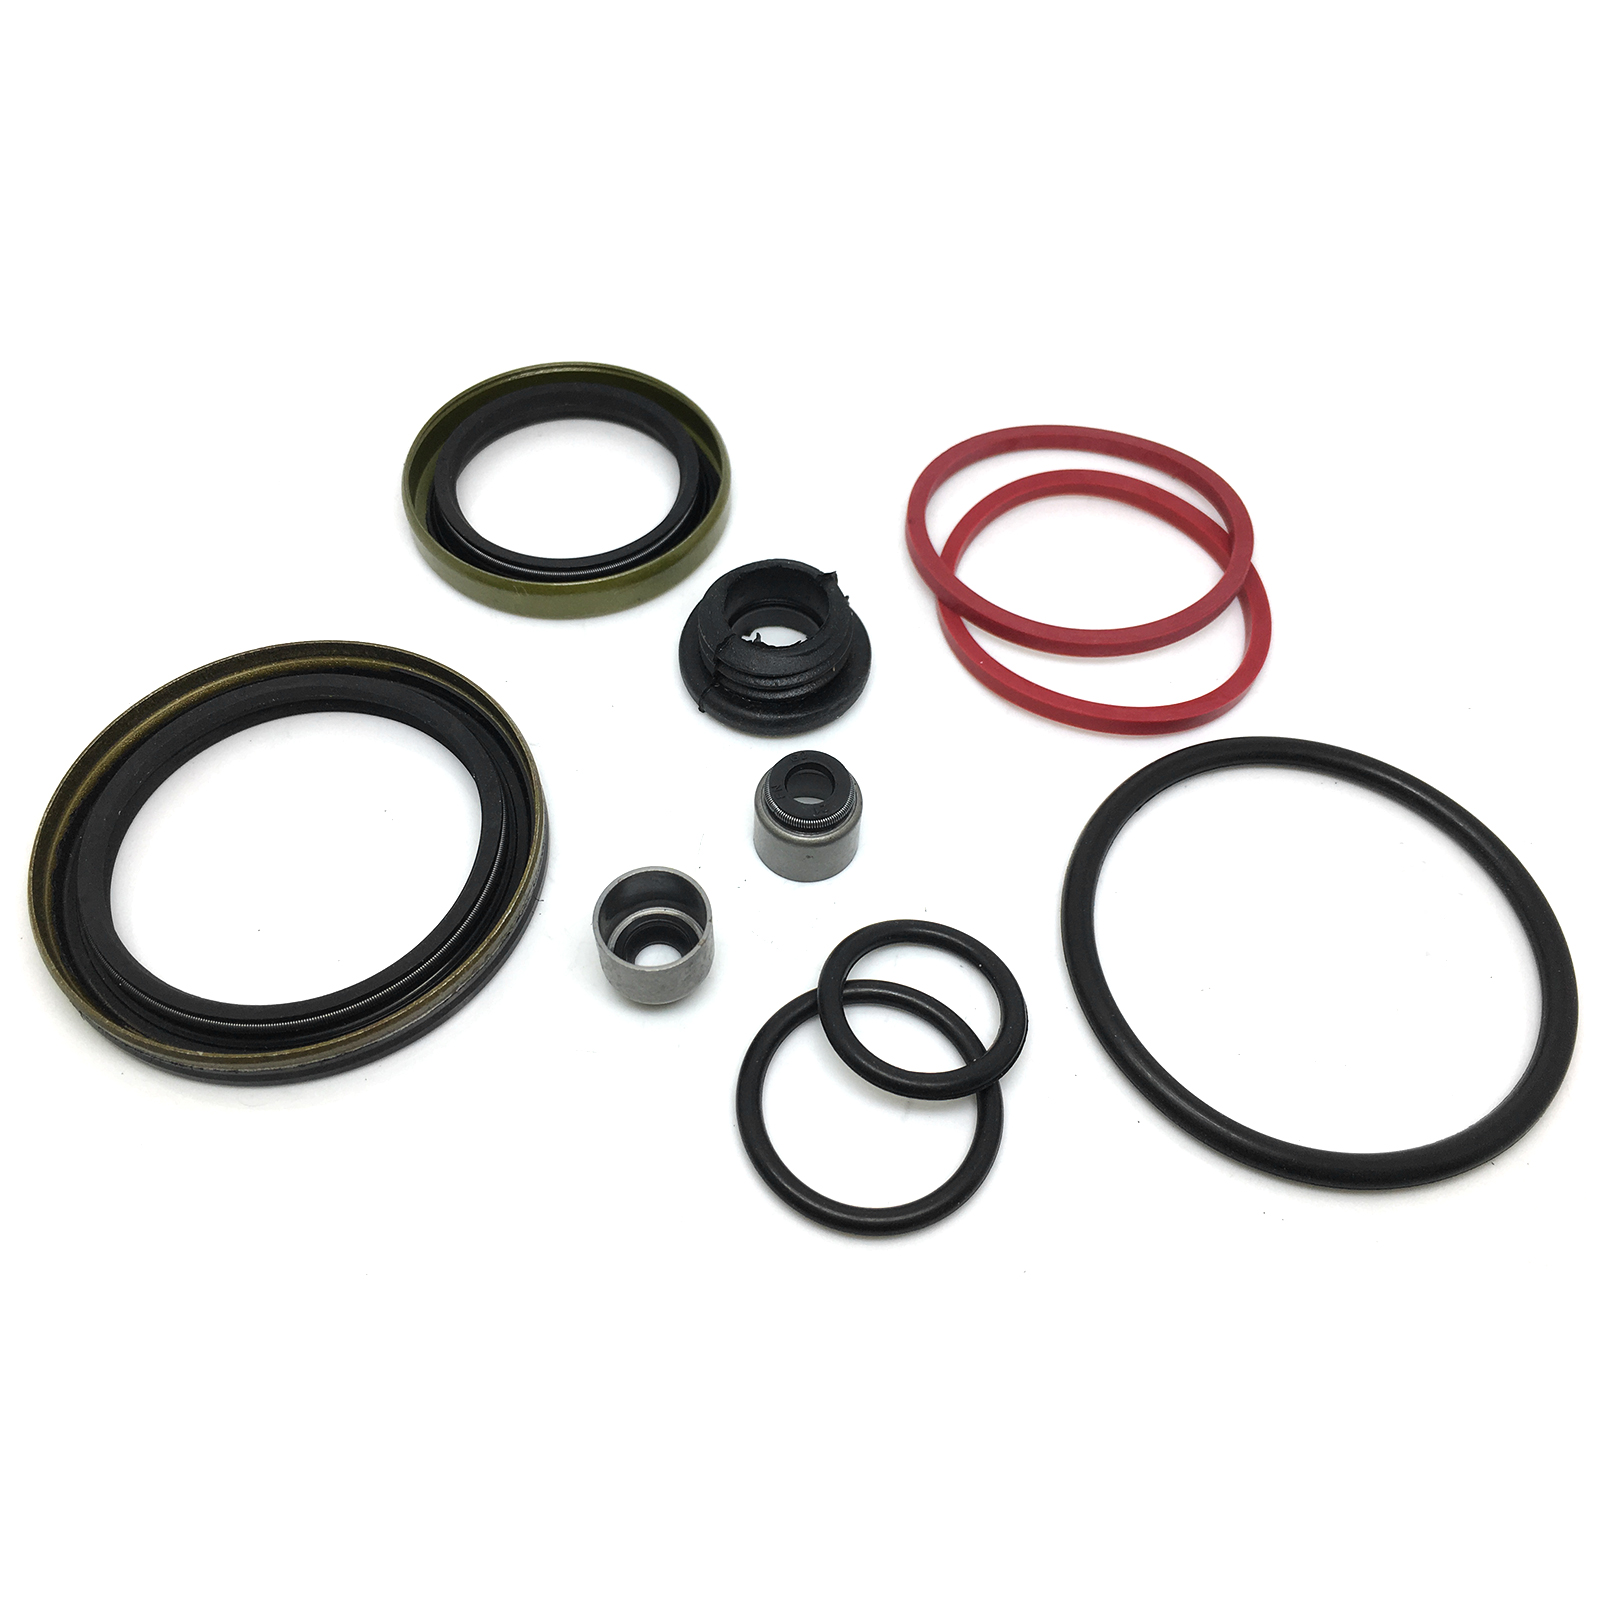 796187 794150 Complete Engine Gasket Kit for Briggs /& Stratton 792621 697191